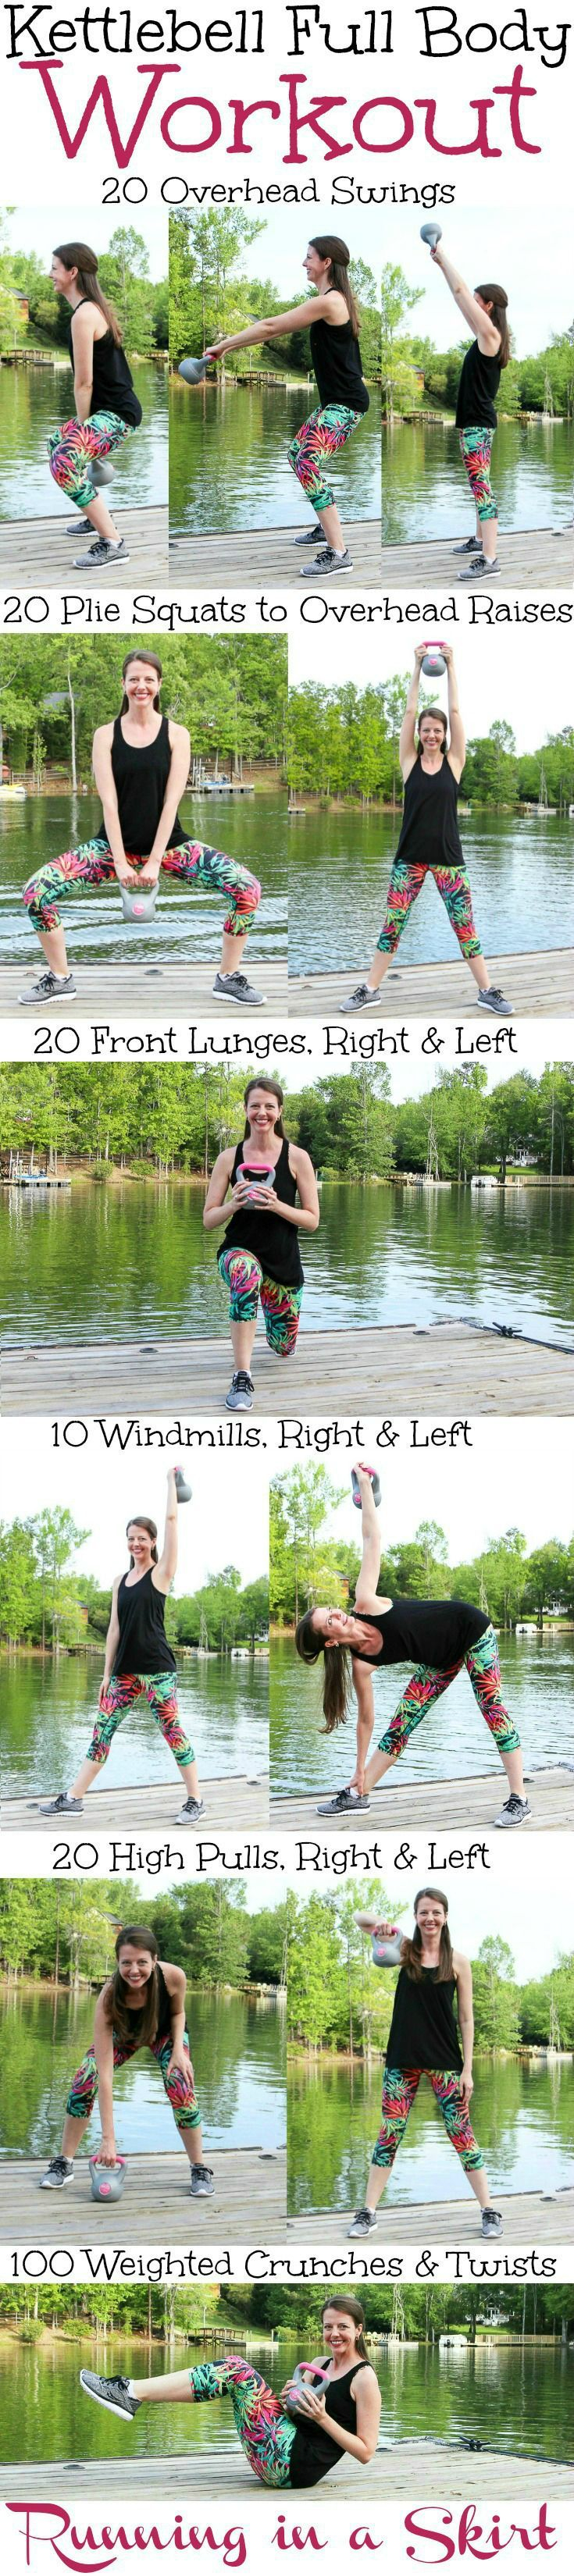 Kettlebell Full Body Workout!  A fat burning, at home routine for arms, upper body, abs, glutes and legs that gets results!  Also gets the heart rate up with cardio.  Great to tone it up with simple moves even a beginner can do.  Add more reps for advanced! / Running in a Skirt